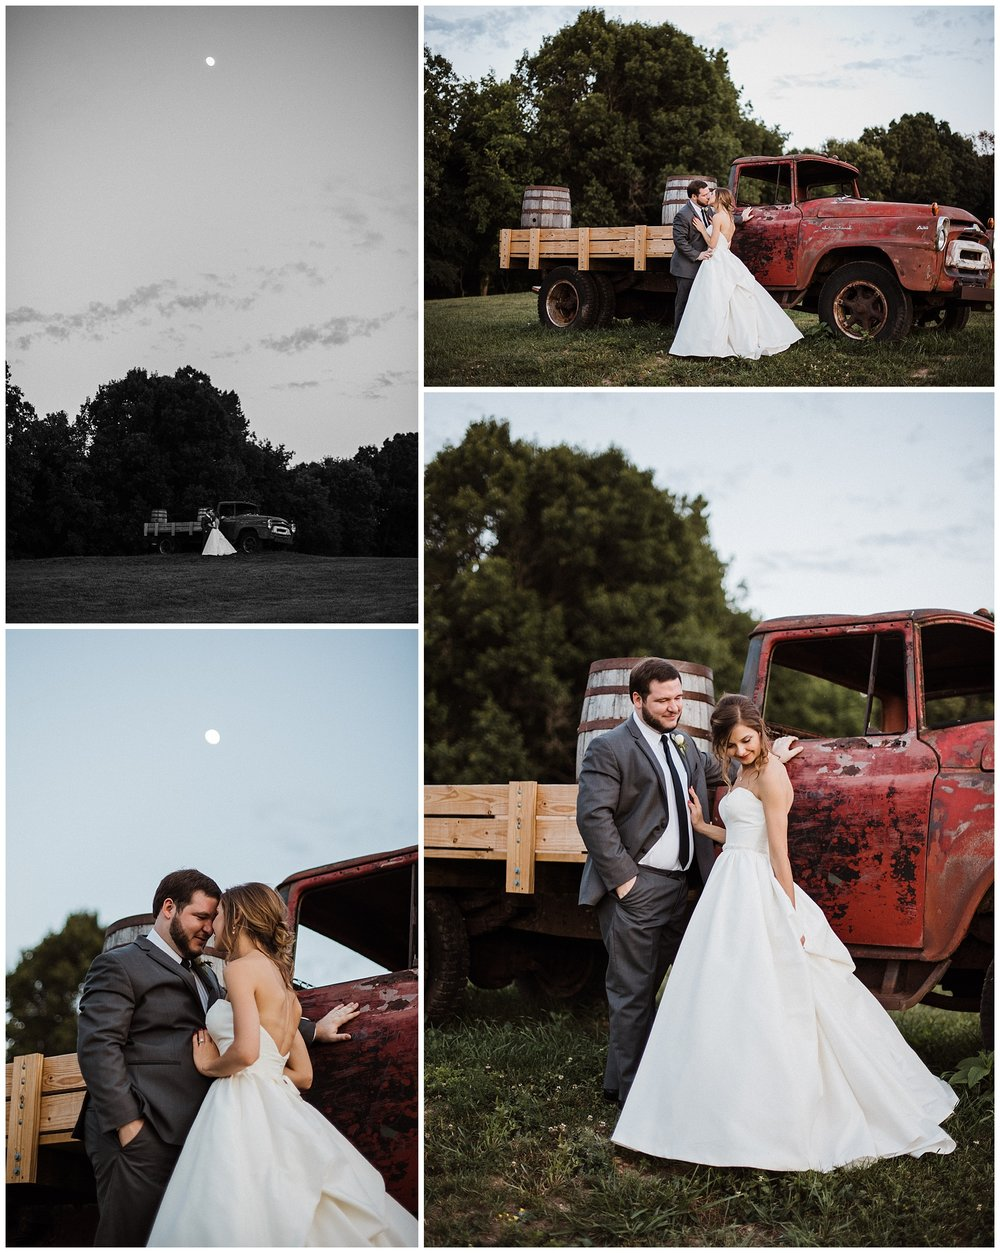 Tanner Burge Photo - Twilight photos with Bride & Groom at Sassafras